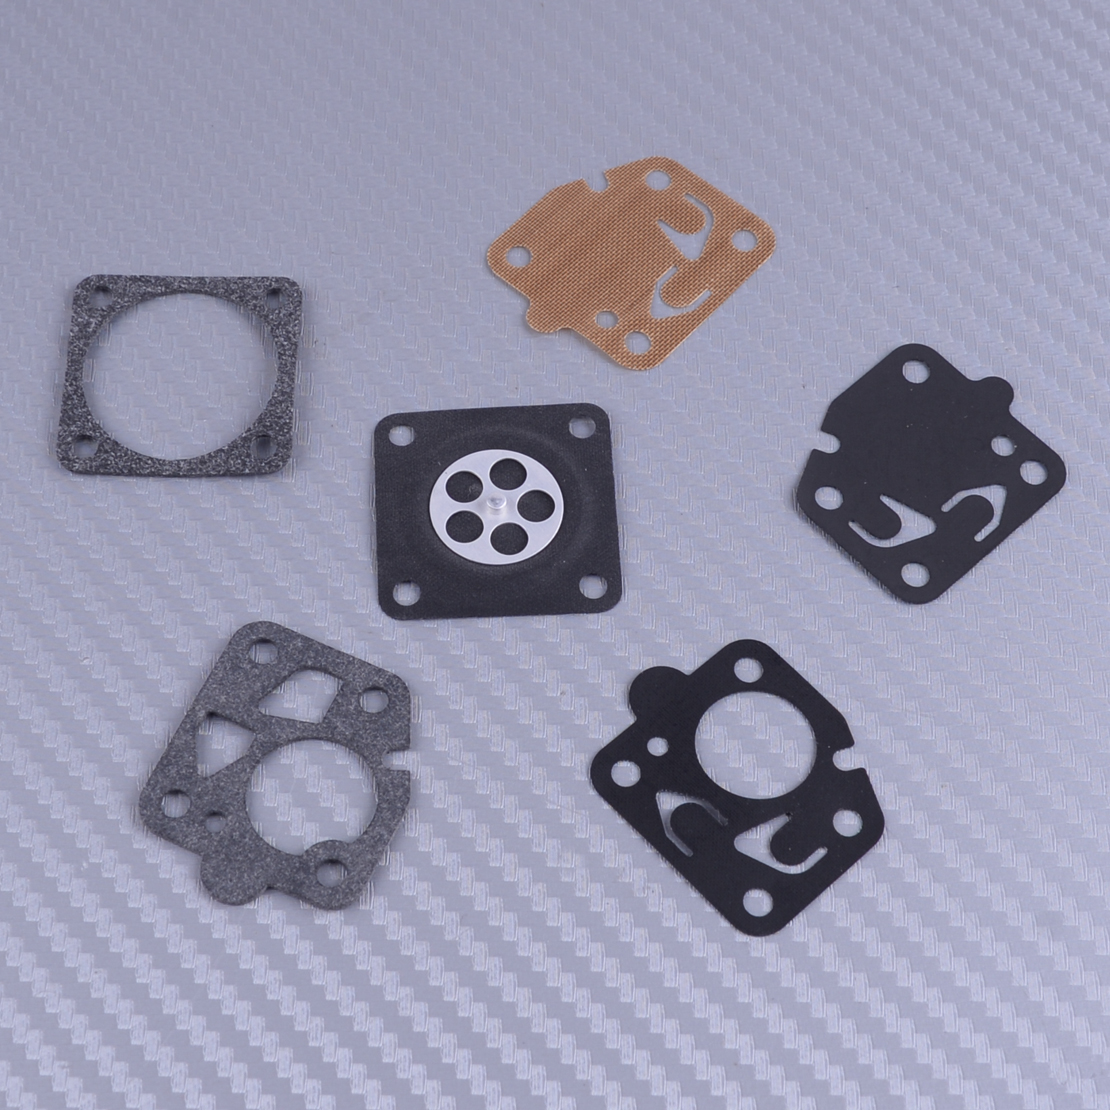 LETAOSK Carburetor Carb Gasket Repair Rebuild Kit Fit For Kawasaki TG18 TG20 TG24 TG28 TG33 TF22 Engine Tool Part